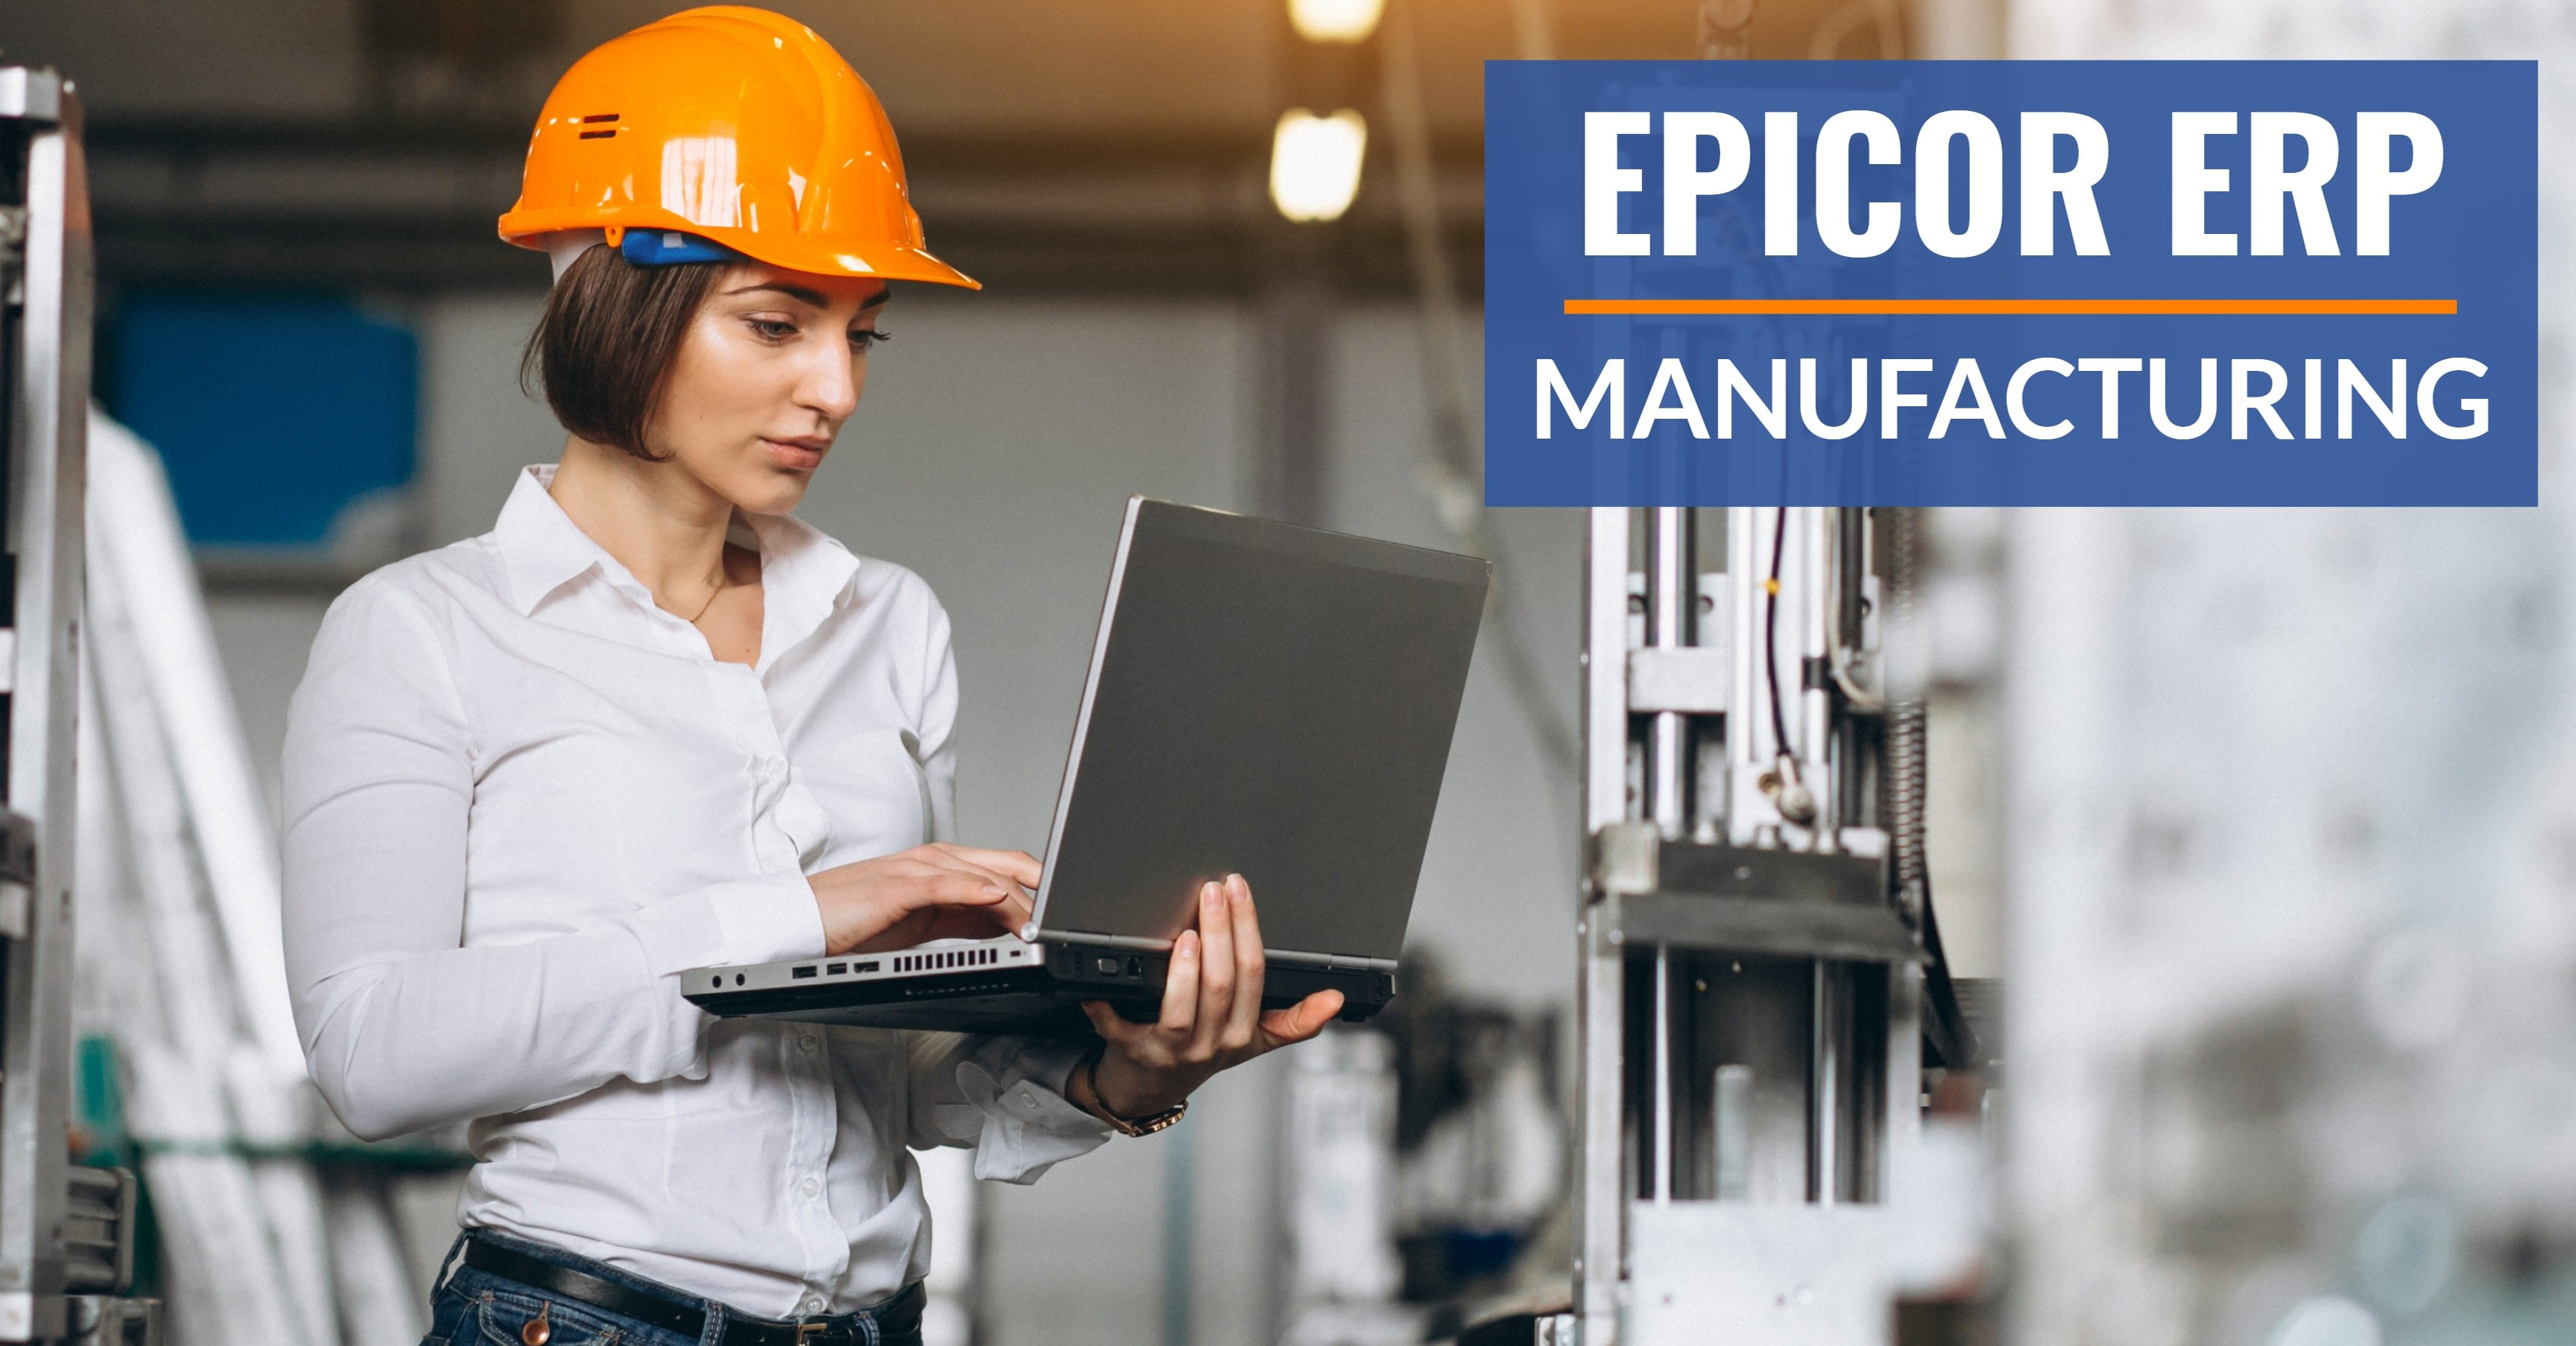 Manufacturing Epicor ERP